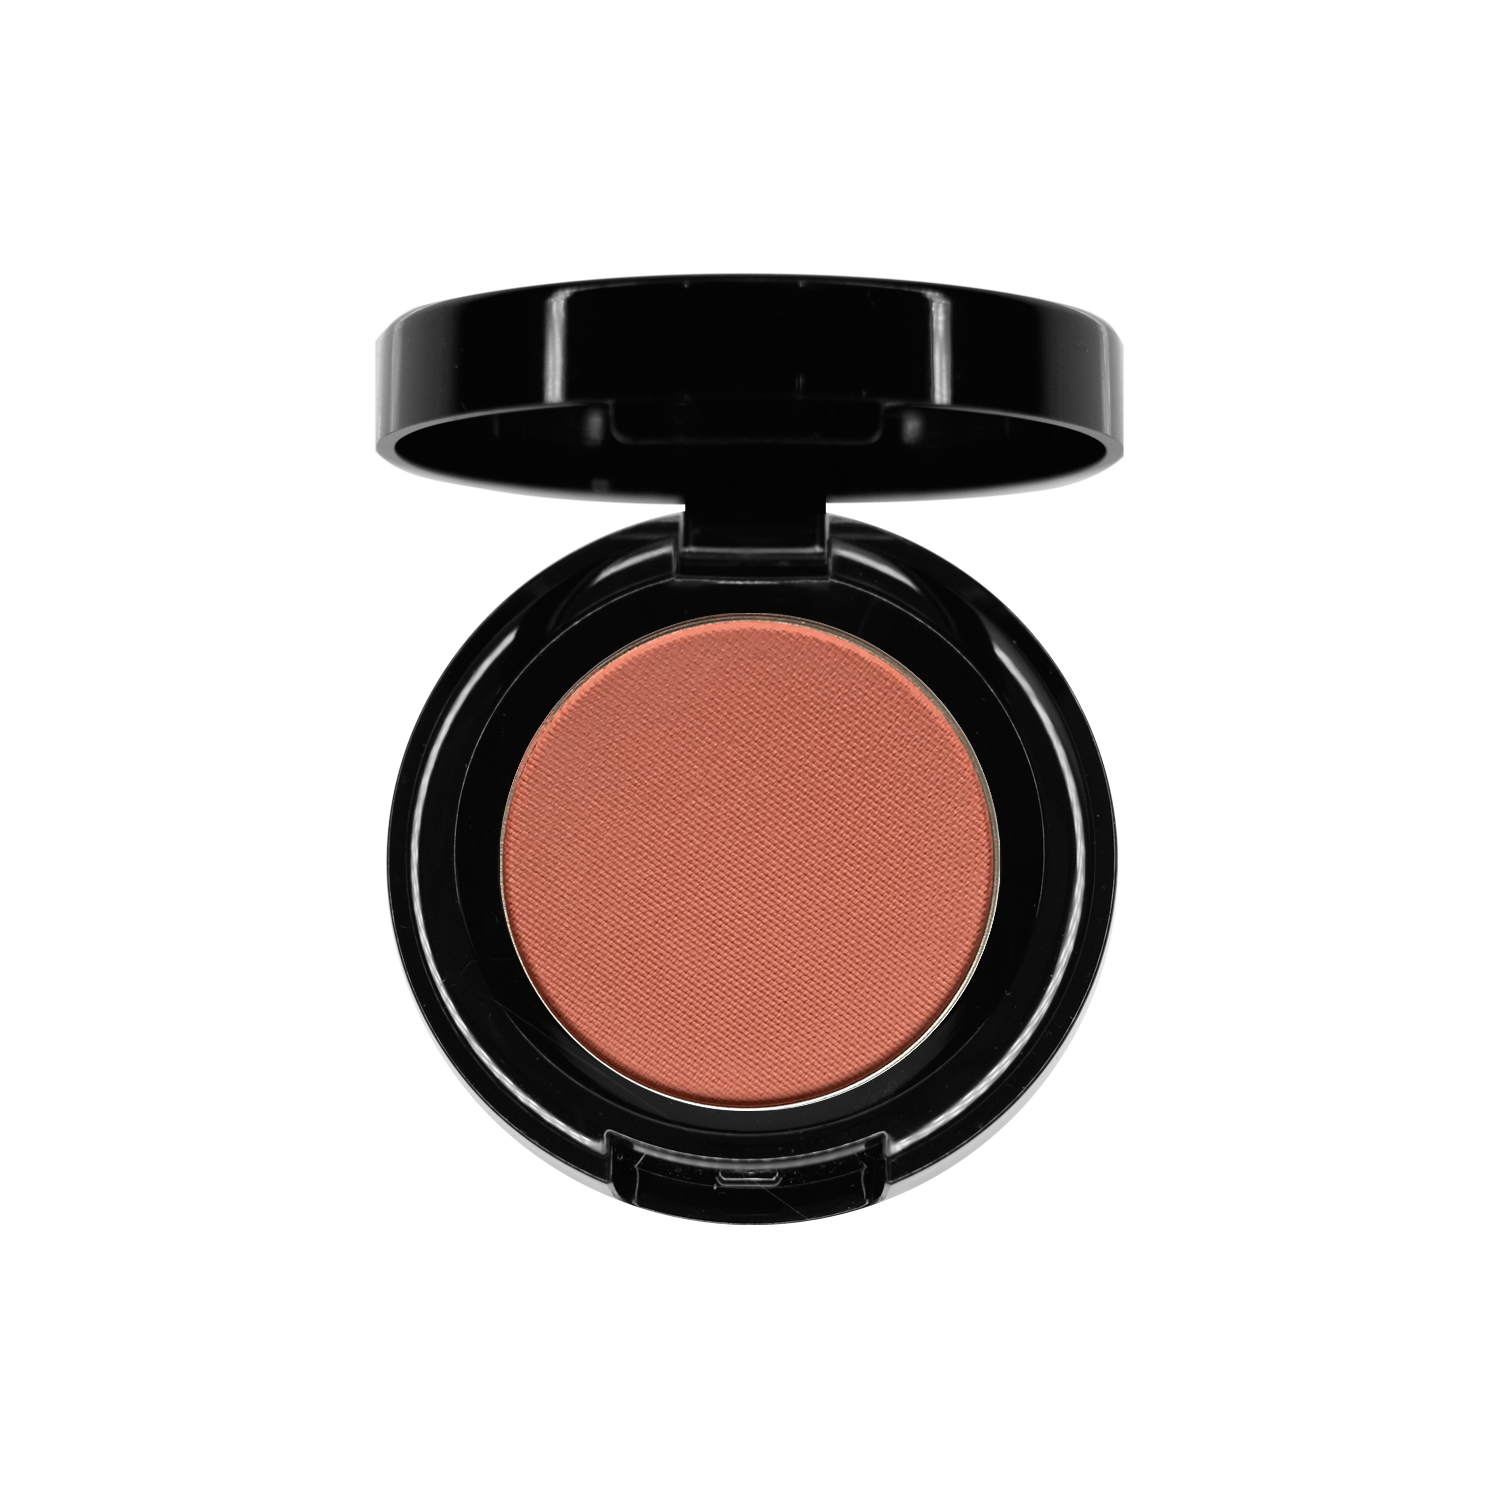 THE PEACH SCENE - Mineral Matte Blush - Jonny Cosmetics